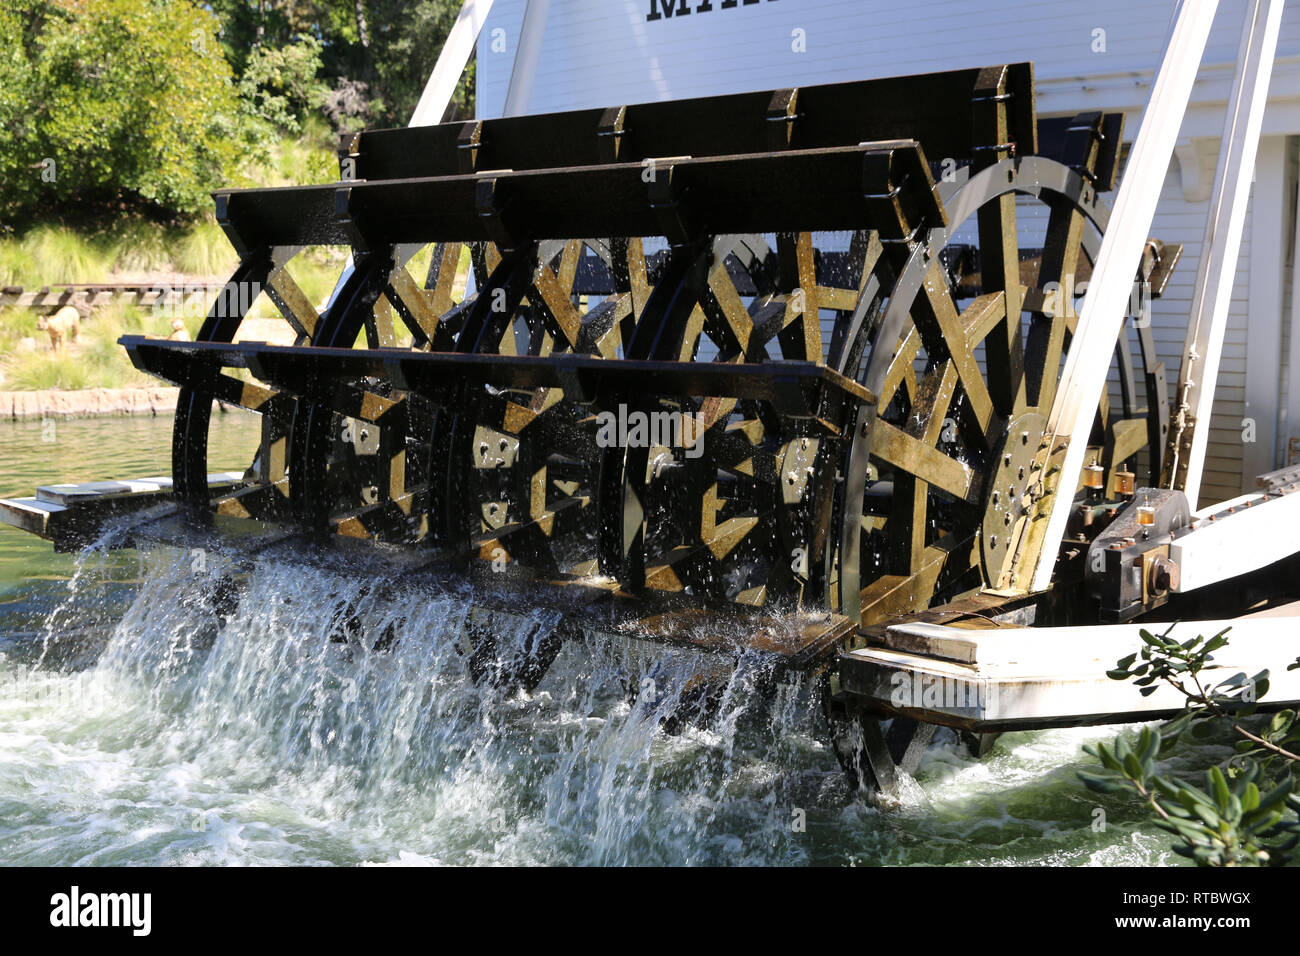 Riverboat Paddles - Stock Image